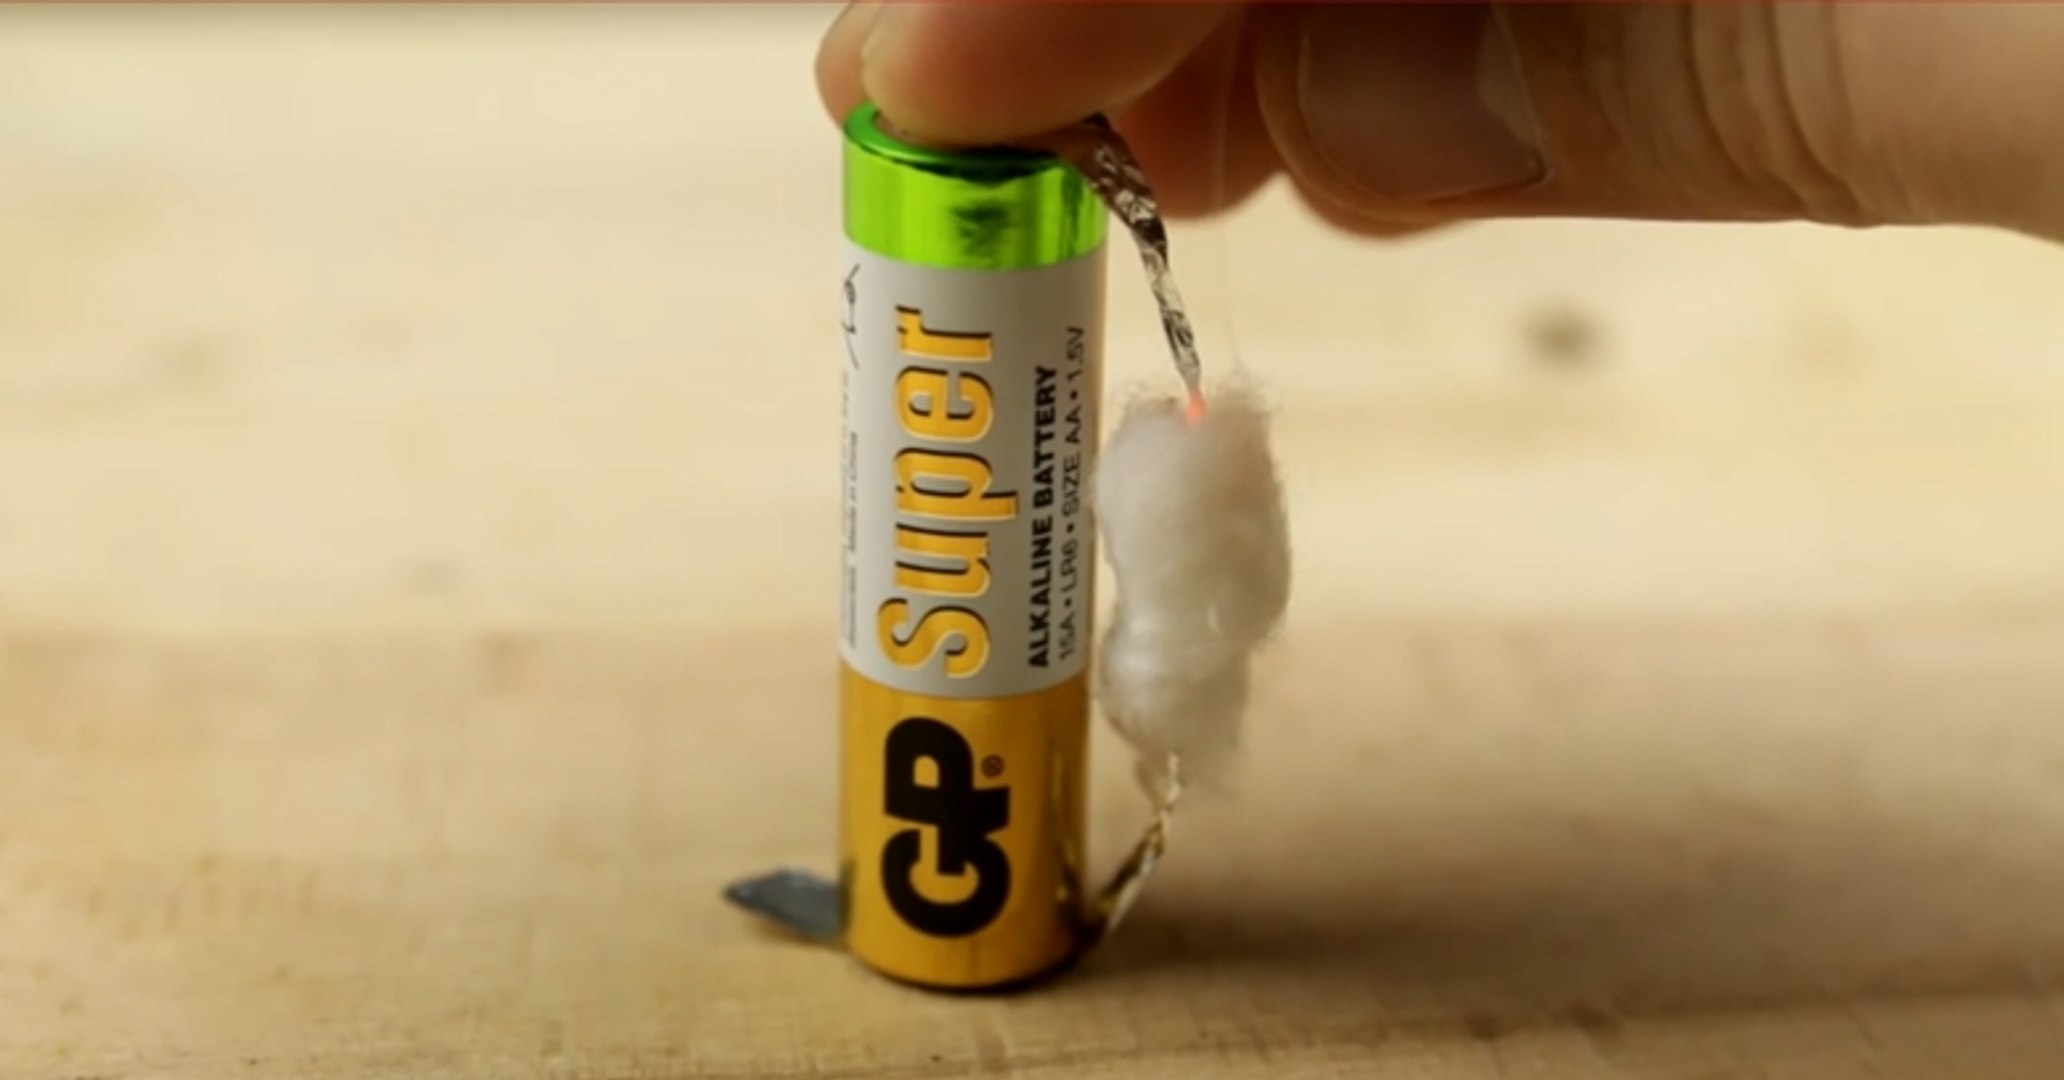 What Can You Make Using Batteries...